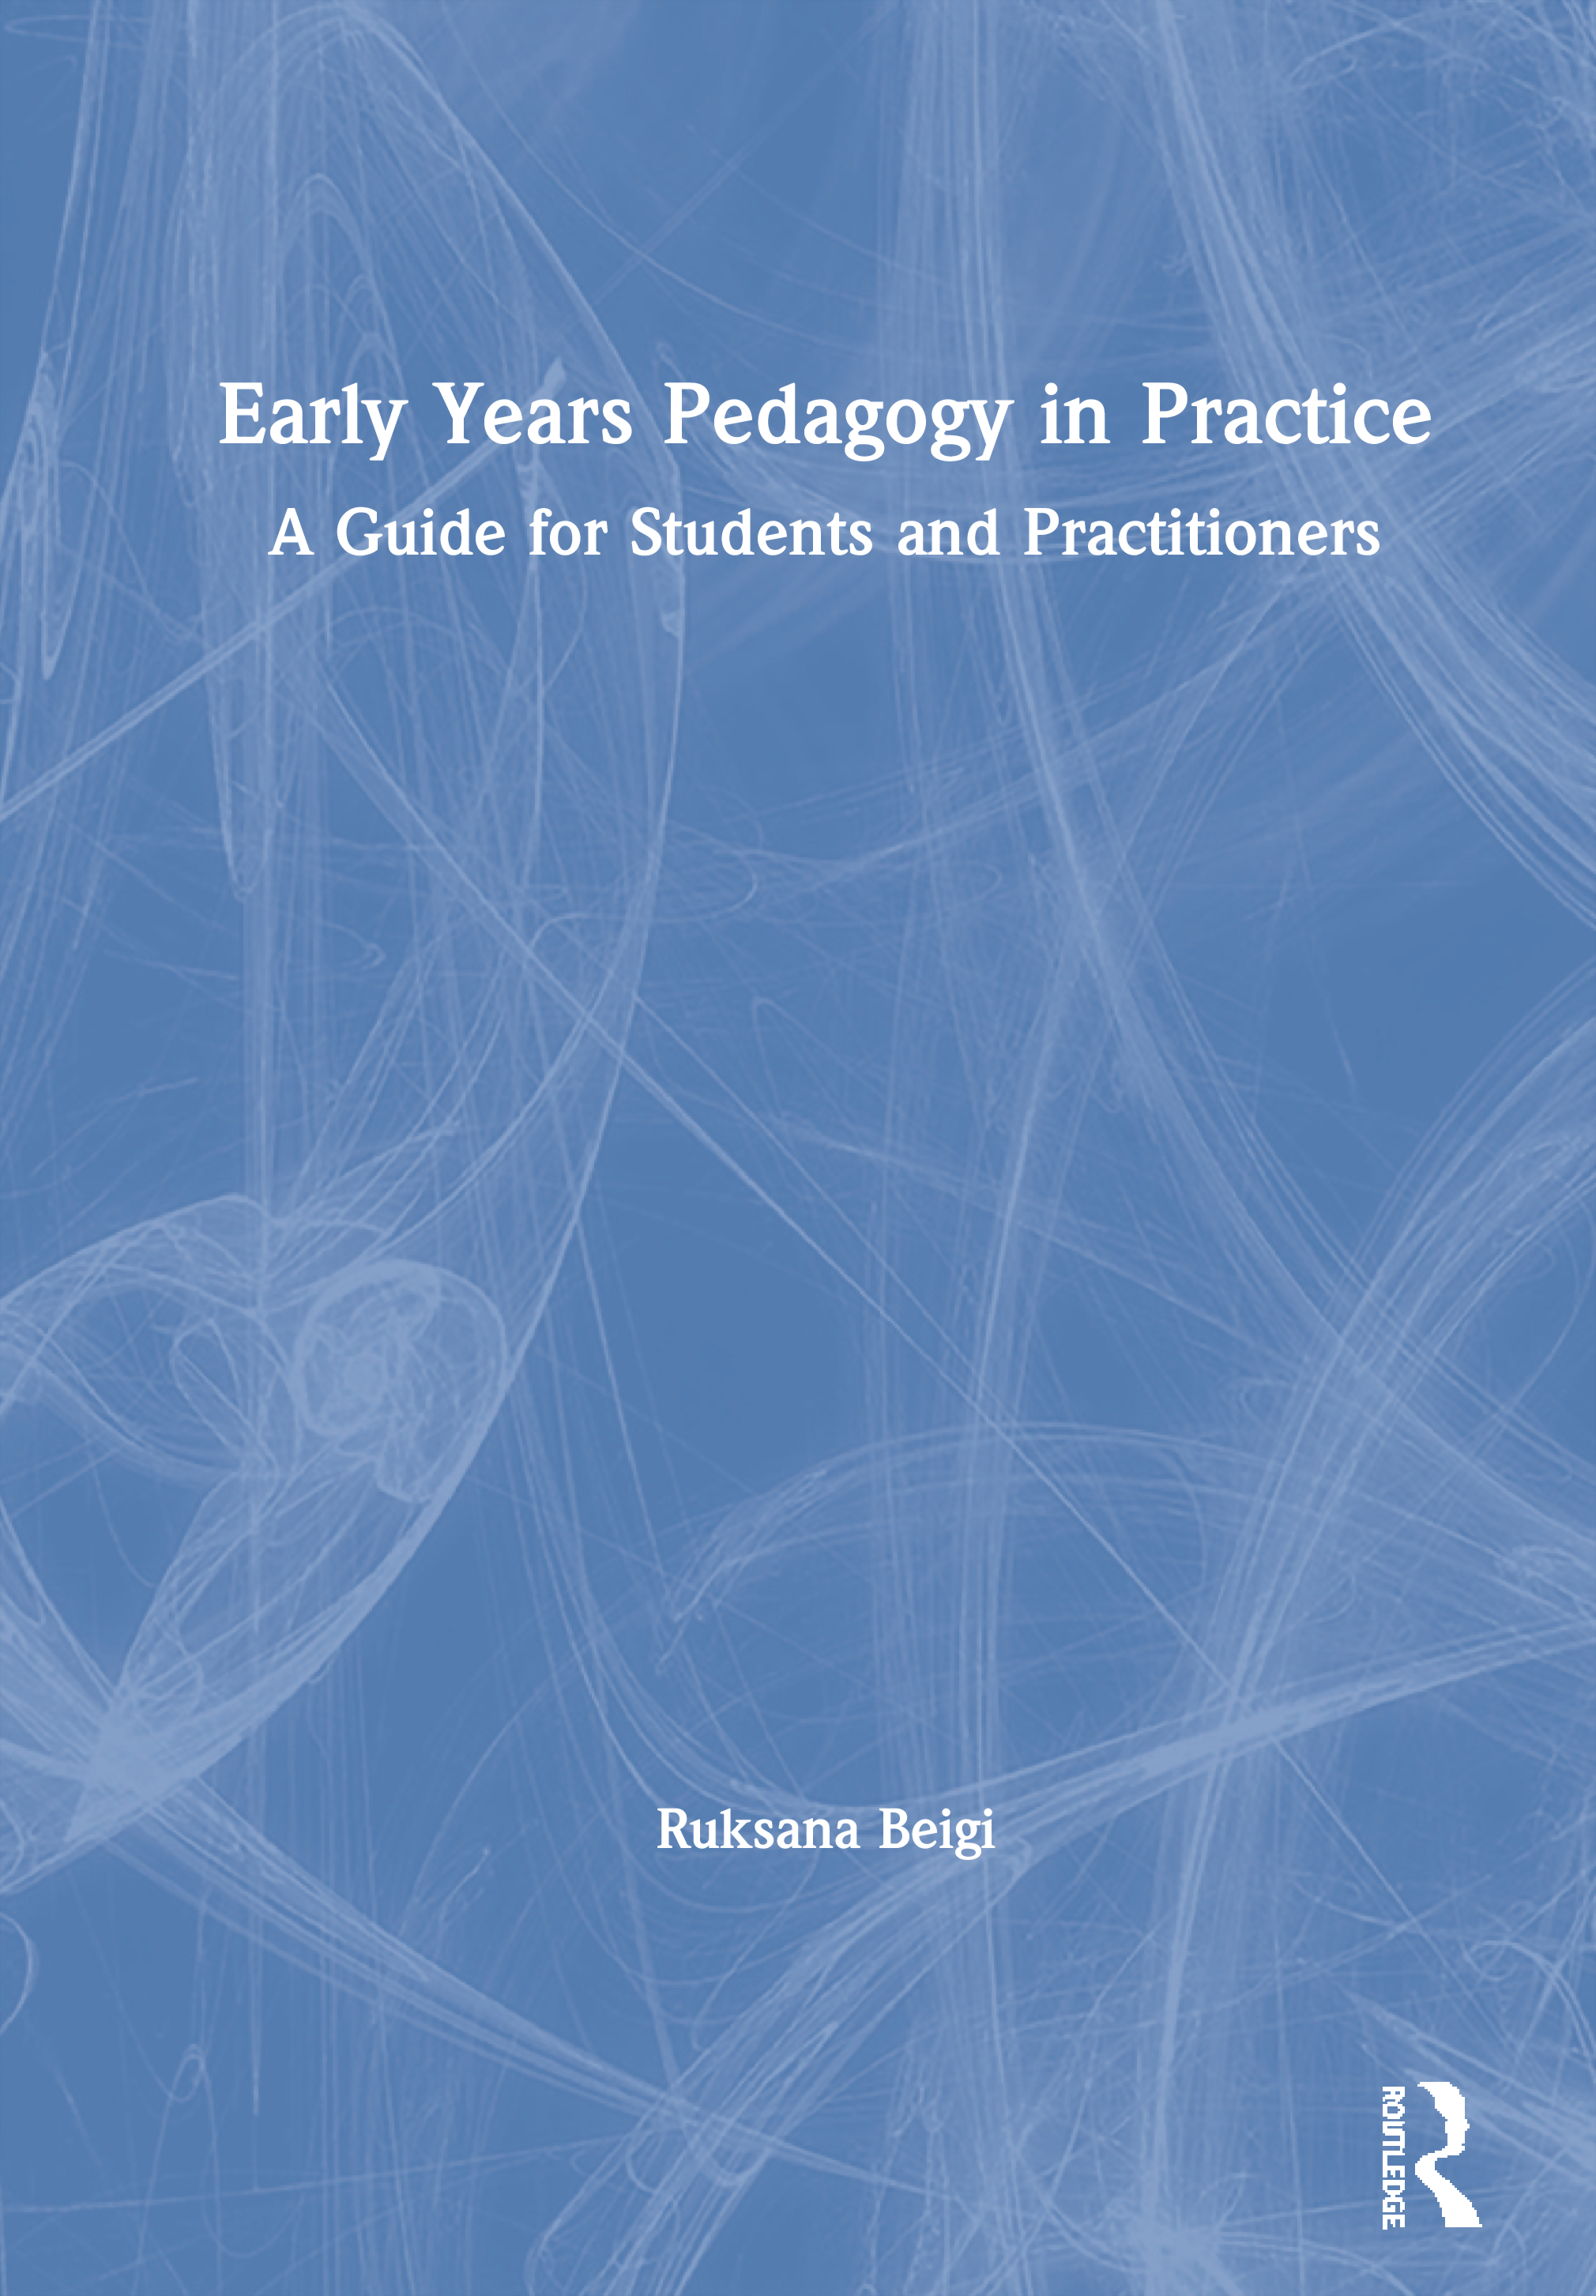 Early Years Pedagogy in Practice: A Guide for Students and Practitioners book cover